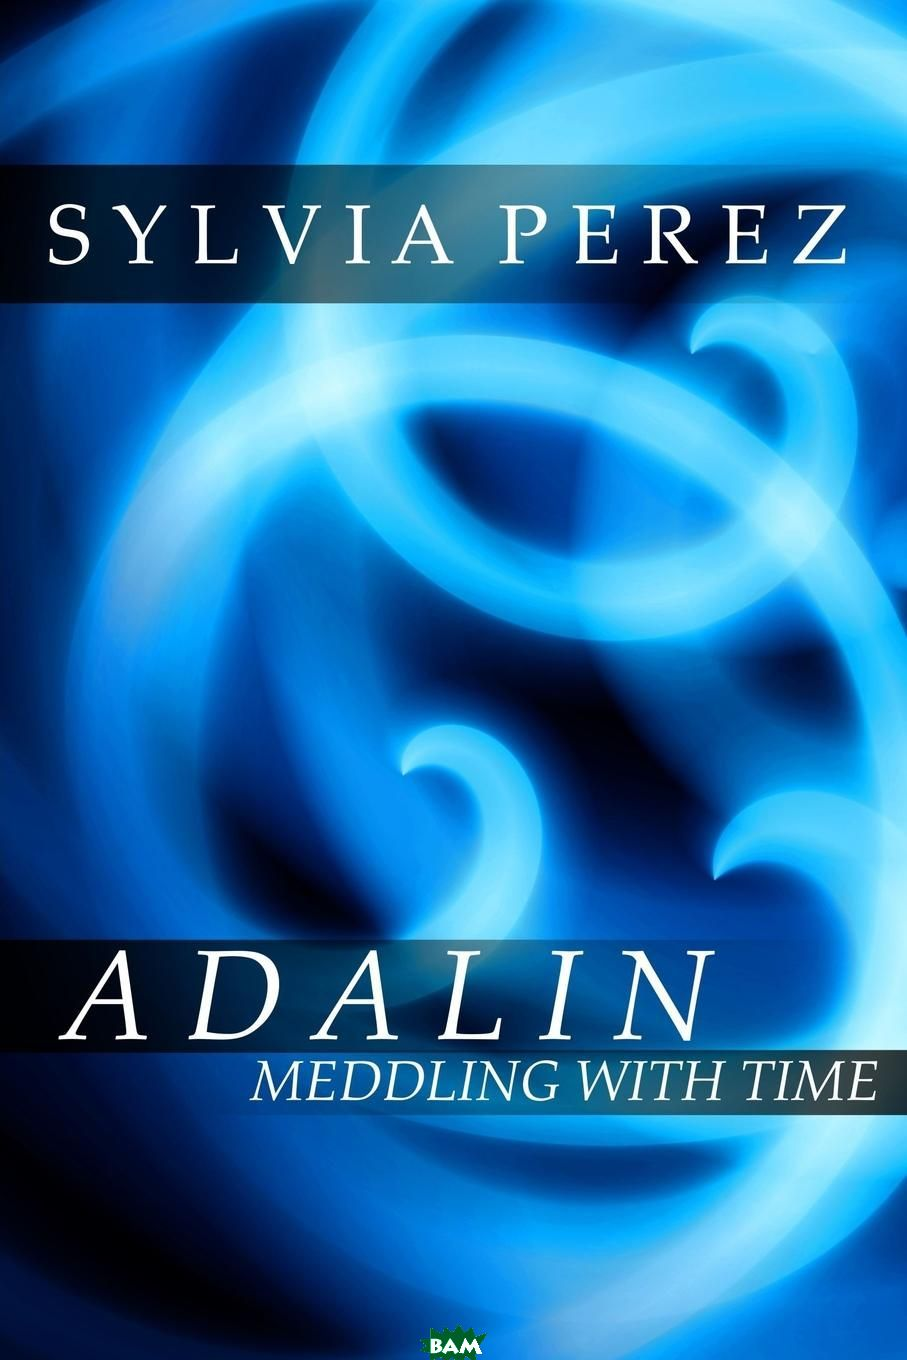 Adalin Meddling with Time